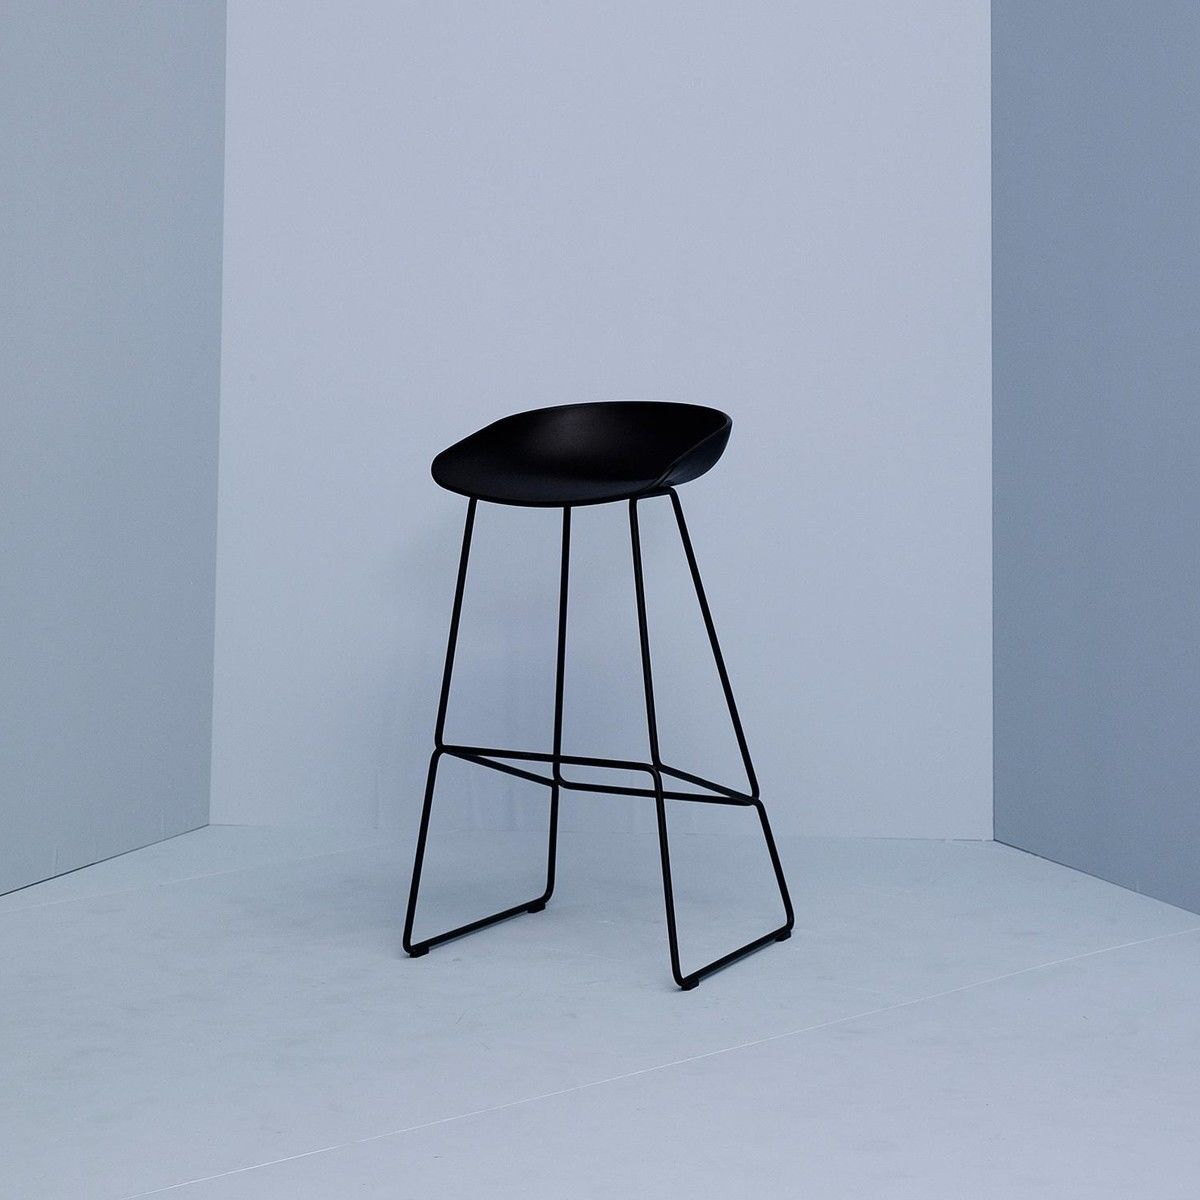 About A Stool Aas38 Tabouret De Bar 65cm Hay